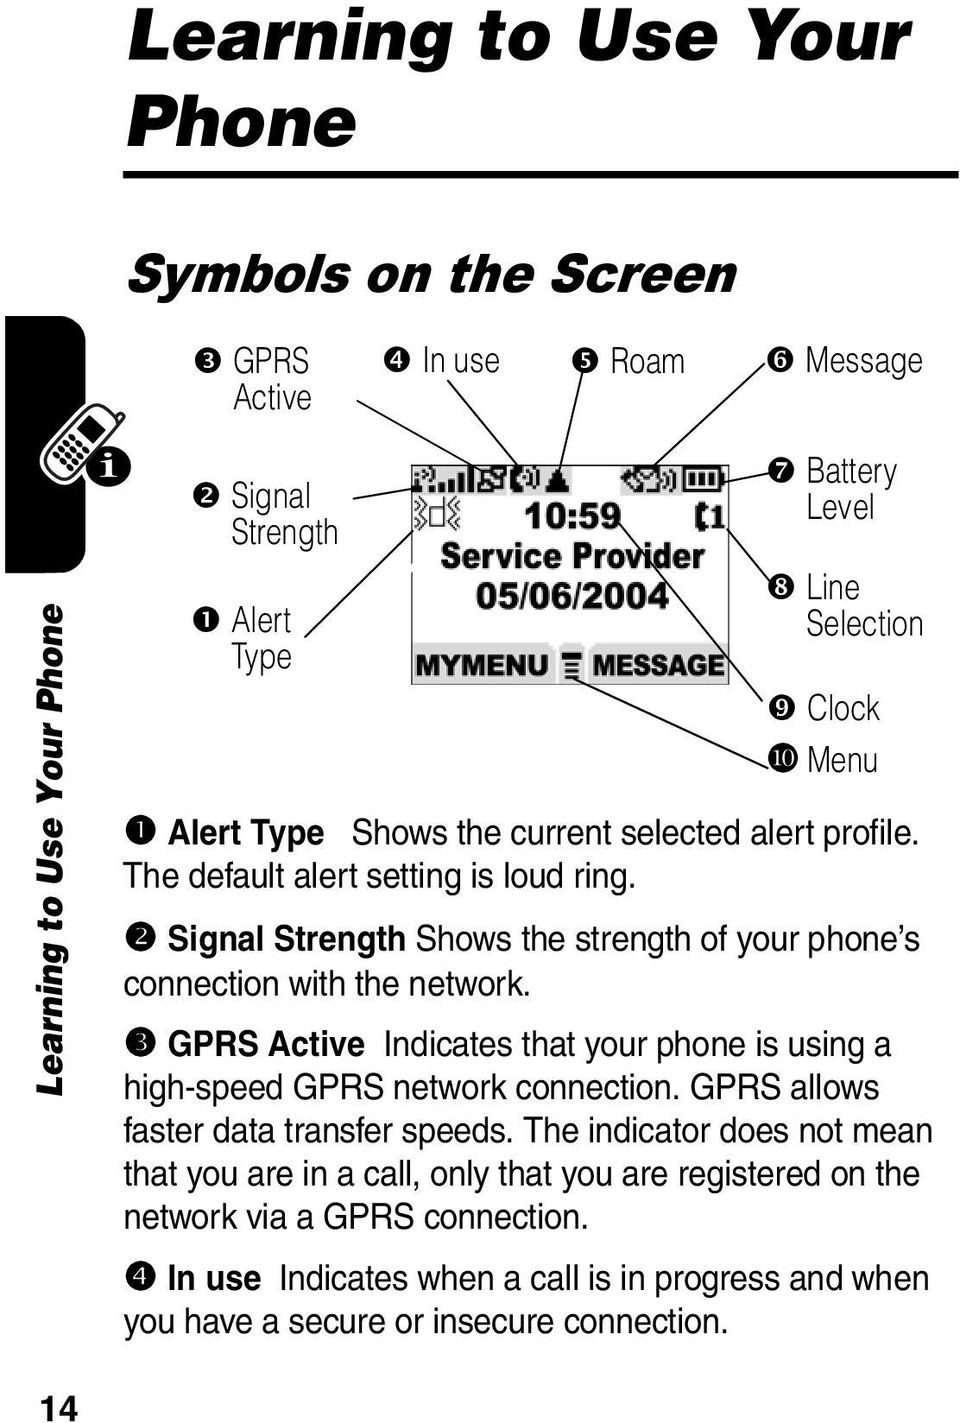 Signal Strength Shows the strength of your phone s connection with the network. GPRS Active Indicates that your phone is using a high-speed GPRS network connection.